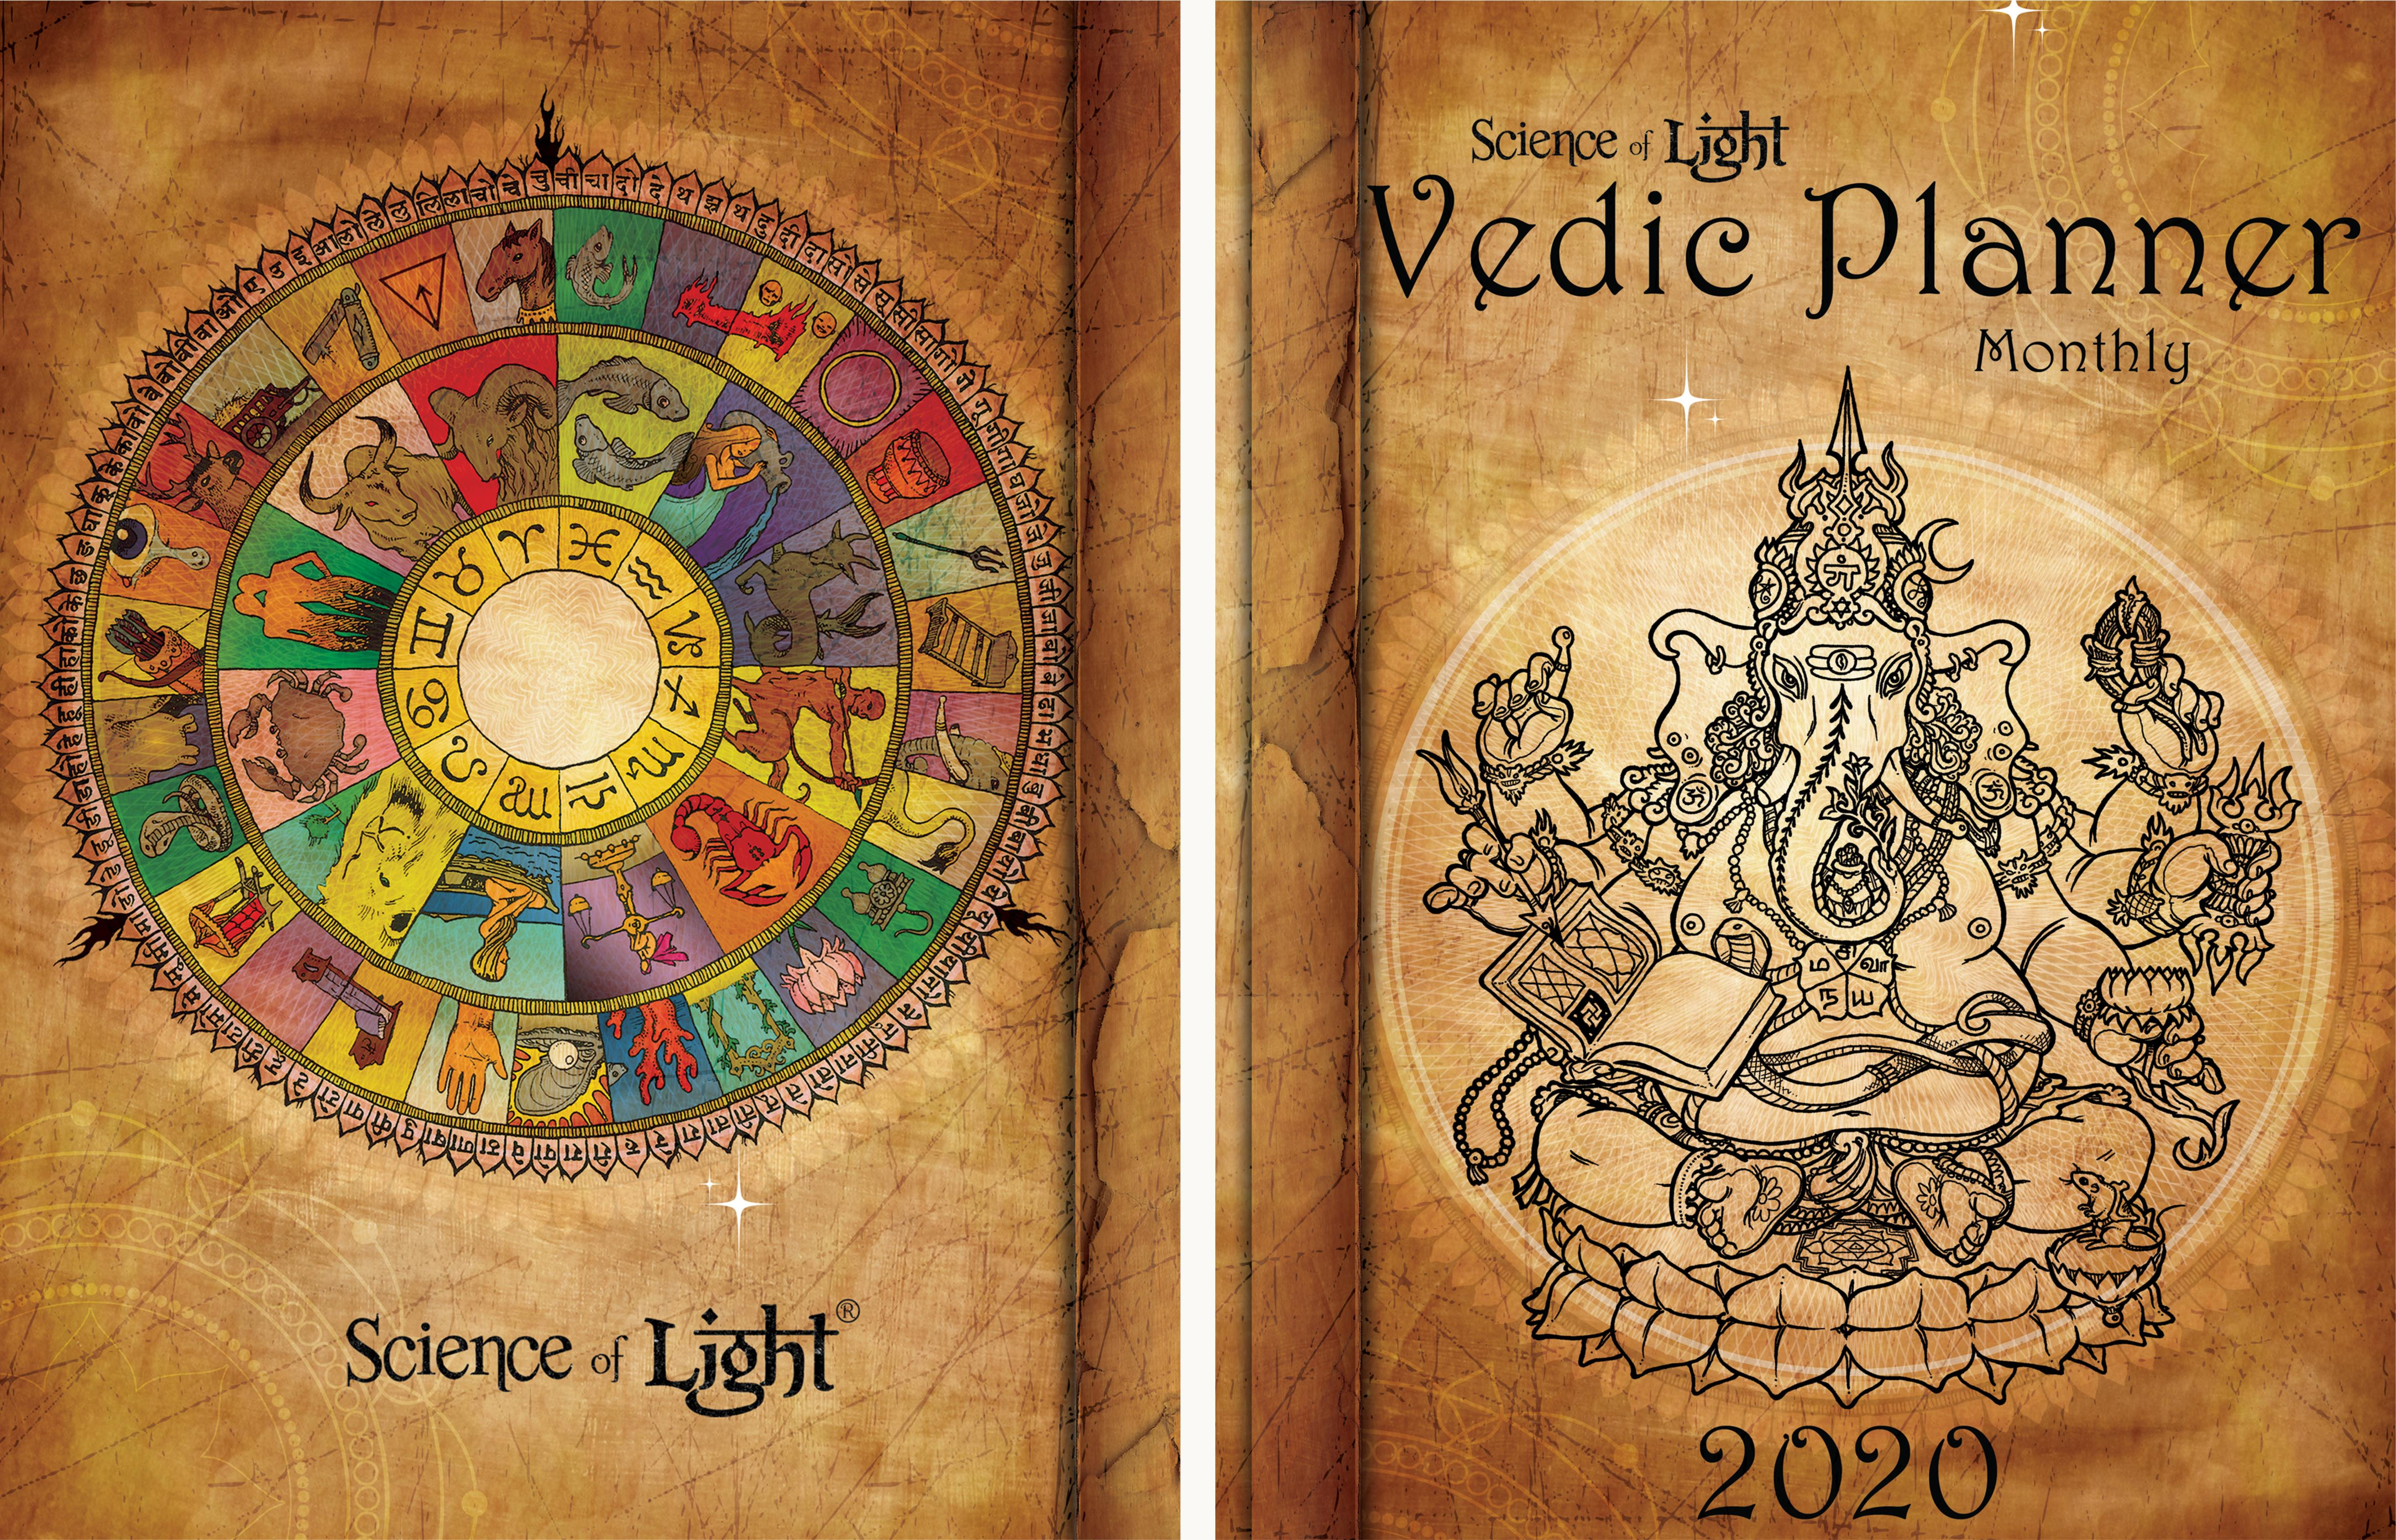 2020 Vedic Planner cover image